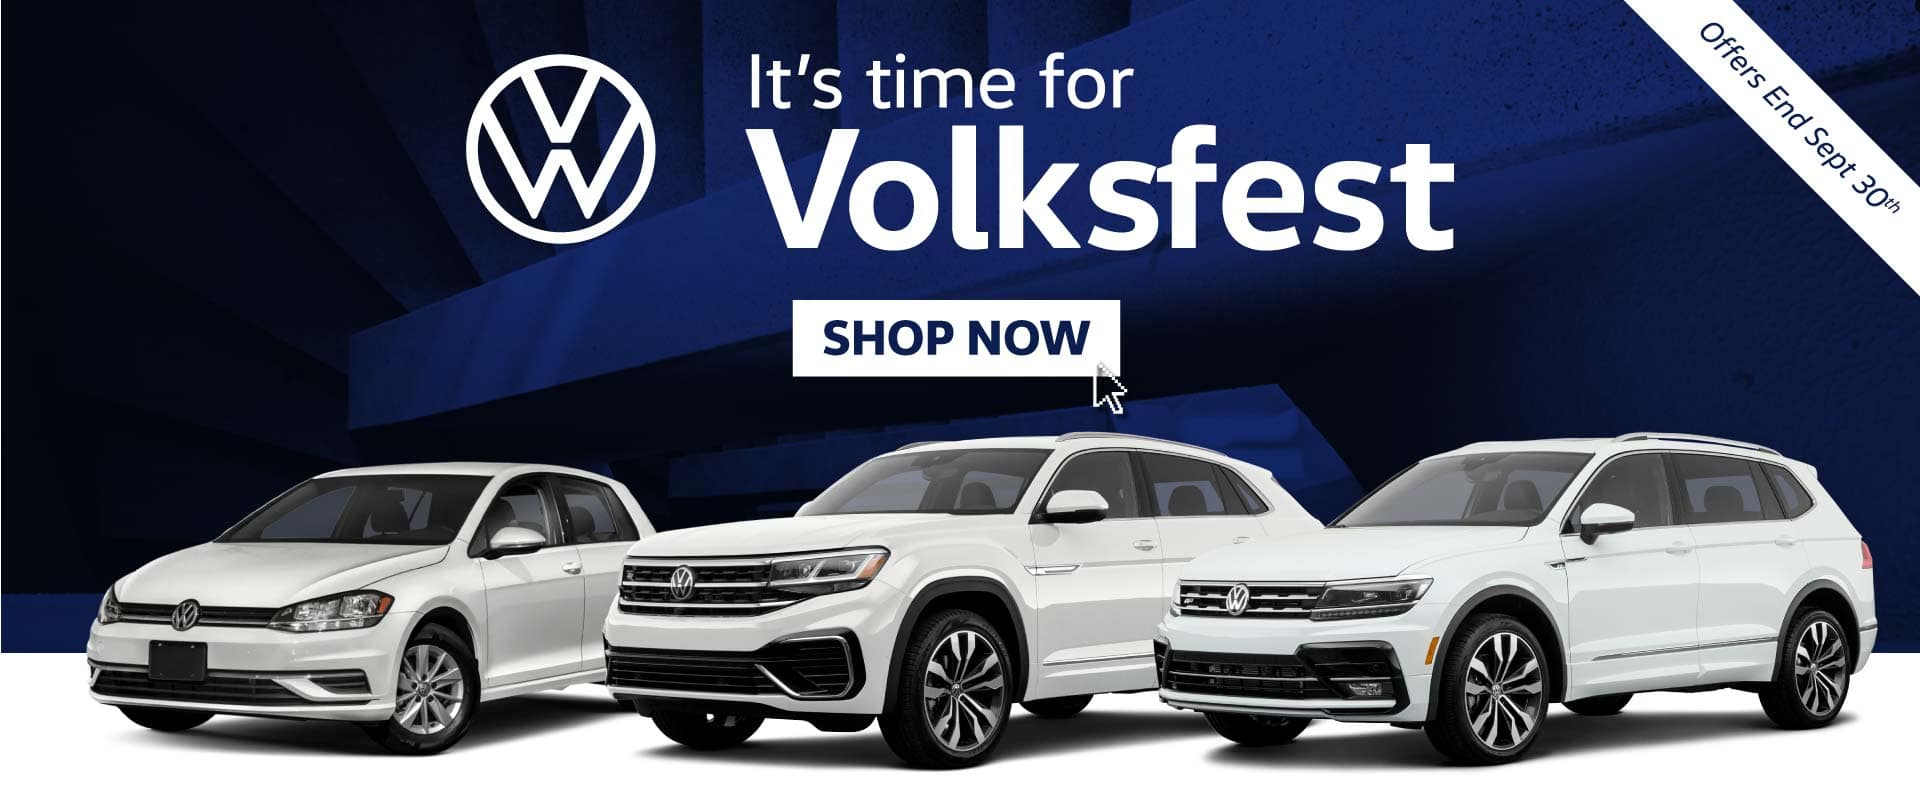 It's Time for Volksfest at Southgate VW in Edmonton, AB - 2021 Volkswagen Golf, Tiguan and Atlas Cross Sport